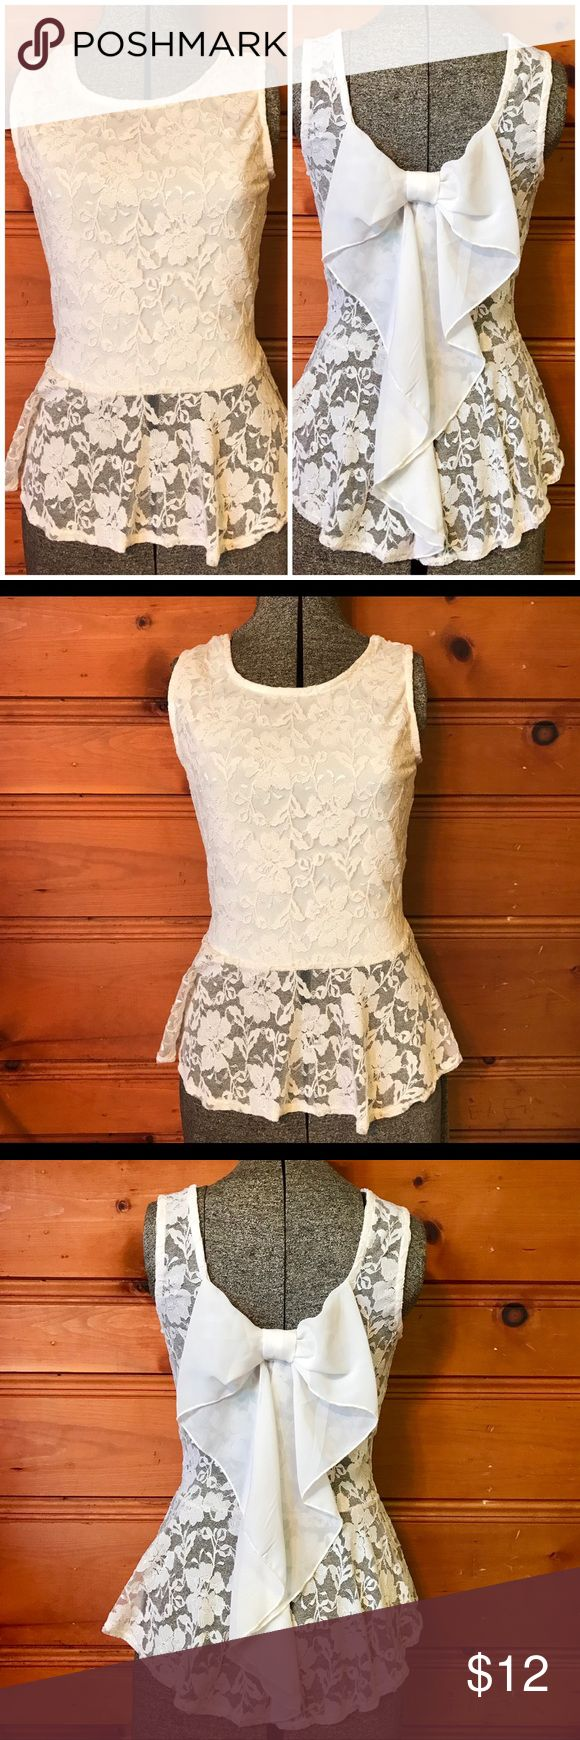 🎀Lacey Bow Tank Top🎀 Absolutely Gorgeous White Lacey Top w/ Bow that flows down the back! Sheer on the bottom lace and the back. The front has a silky lining. Bundle TWO or more listings to save 15%! 🎀 Joyce Leslie Tops Tank Tops